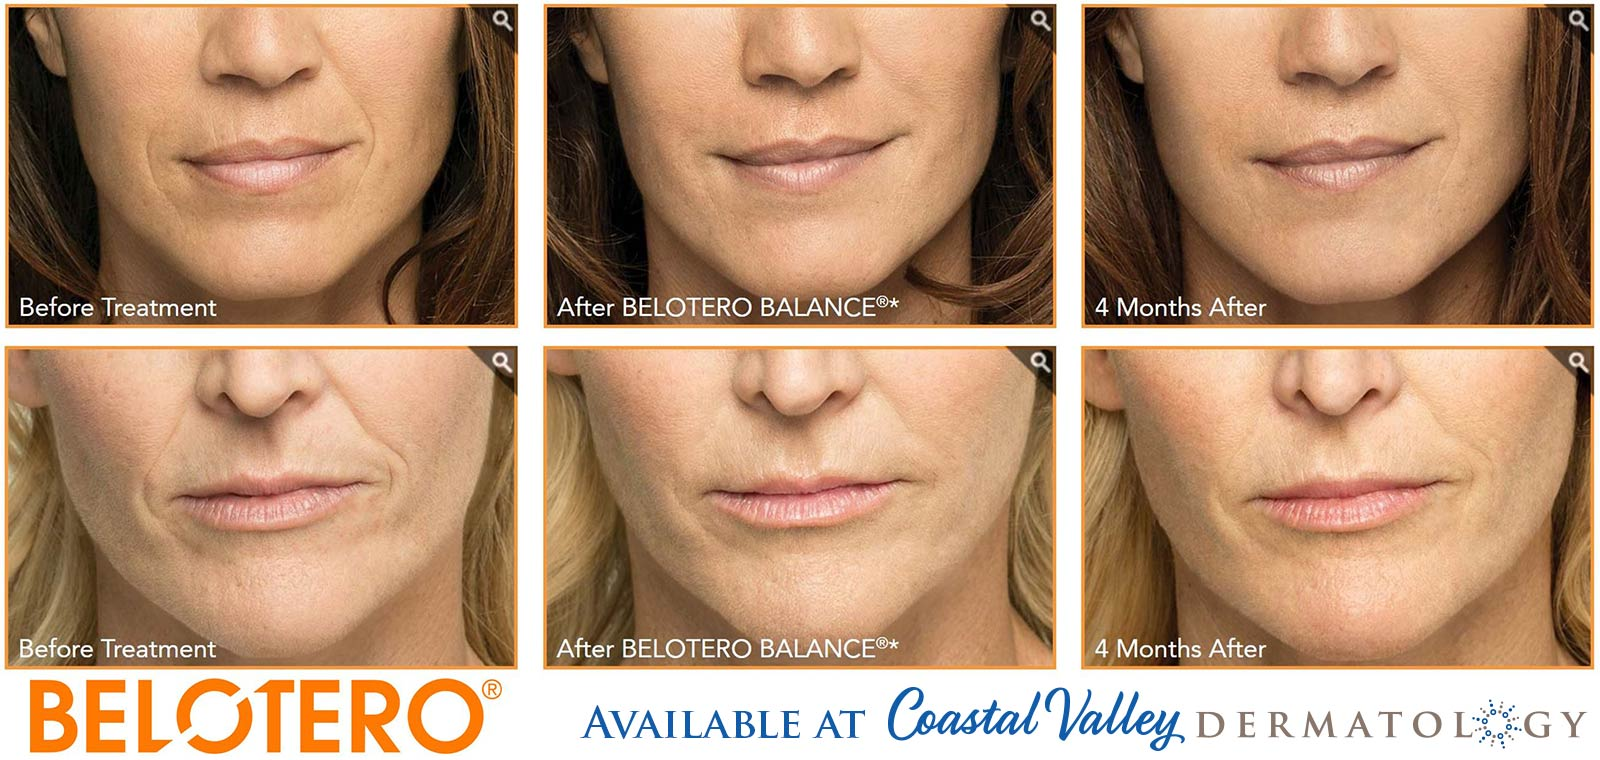 coastal-valley-dermatology-carmel-belotero-balance-before-after-photo